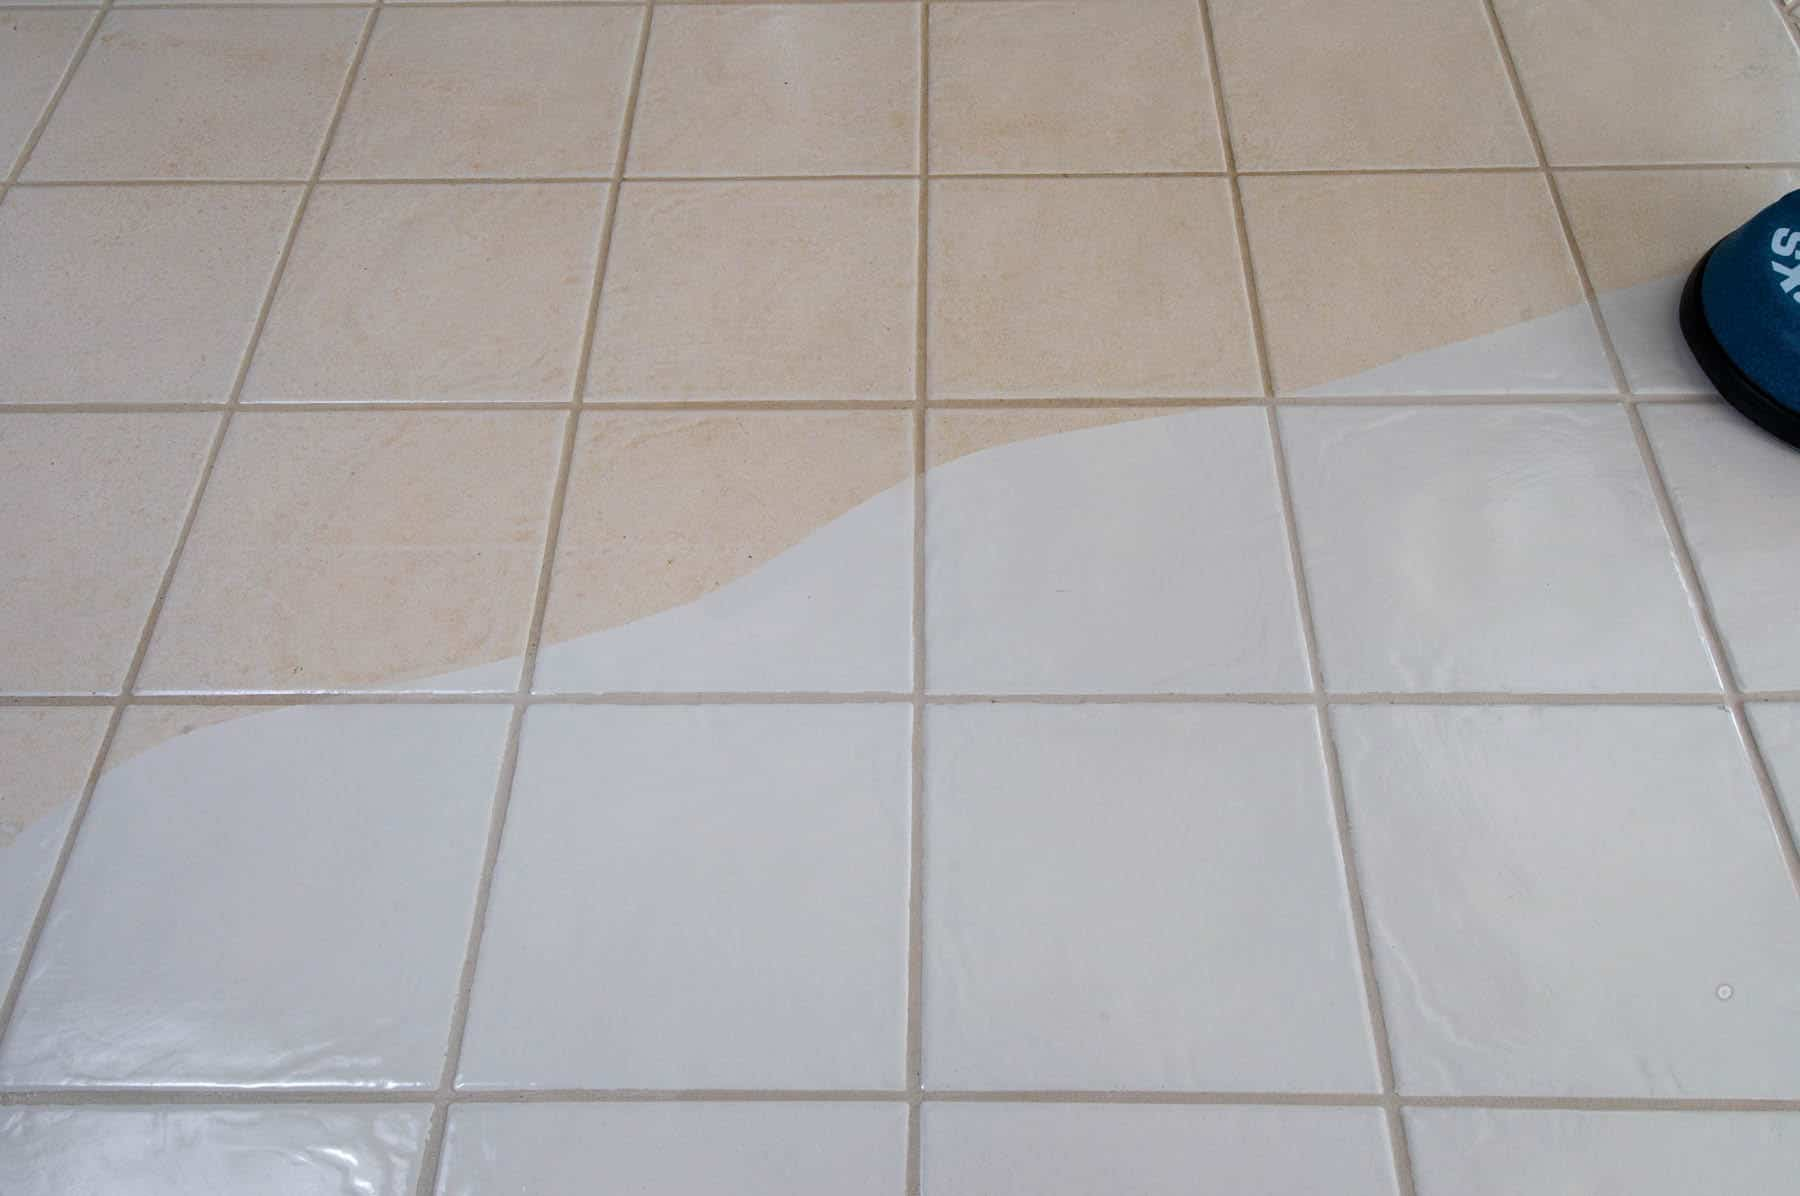 grout cleaning naperville il we clean service tile marble grou